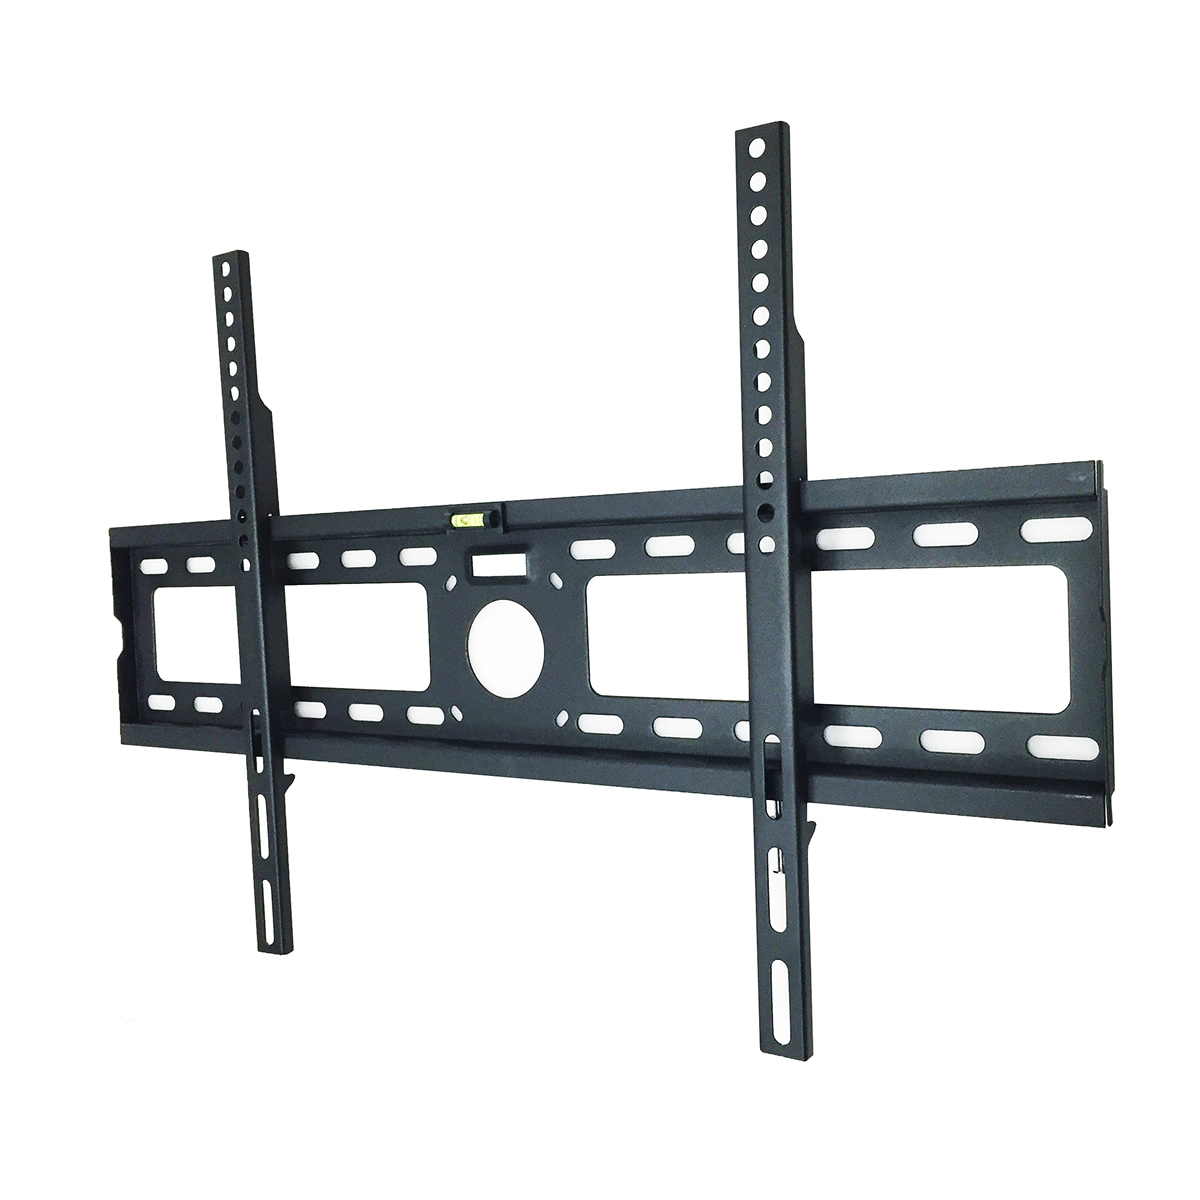 flat tv wall mount bracket for 32 37 42 47 50 55 60 65 inch ebay. Black Bedroom Furniture Sets. Home Design Ideas